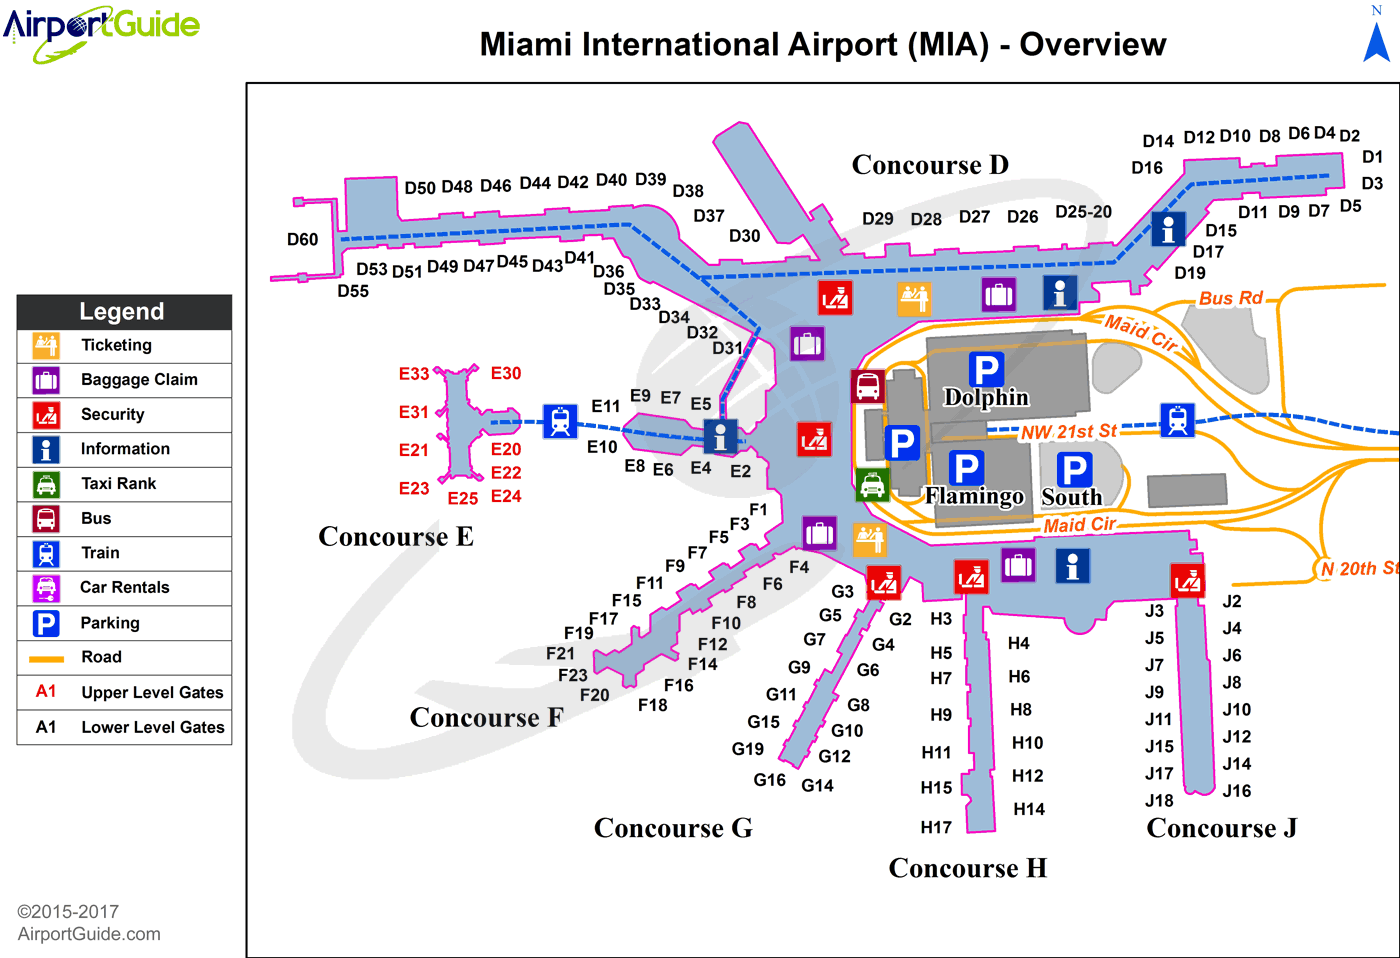 Miami - Miami International (MIA) Airport Terminal Map - Overview